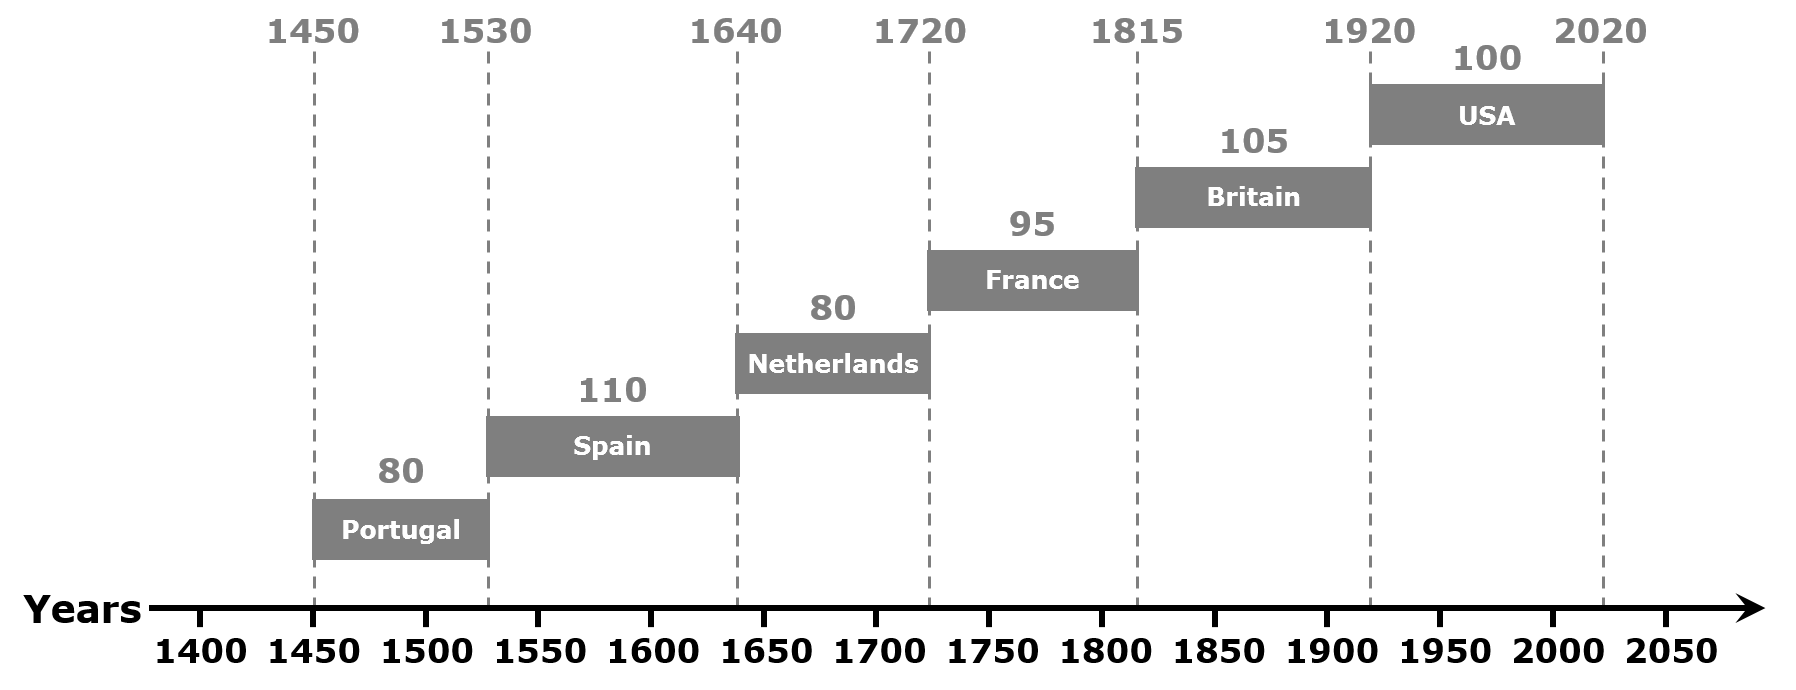 History of World Trade Currencies